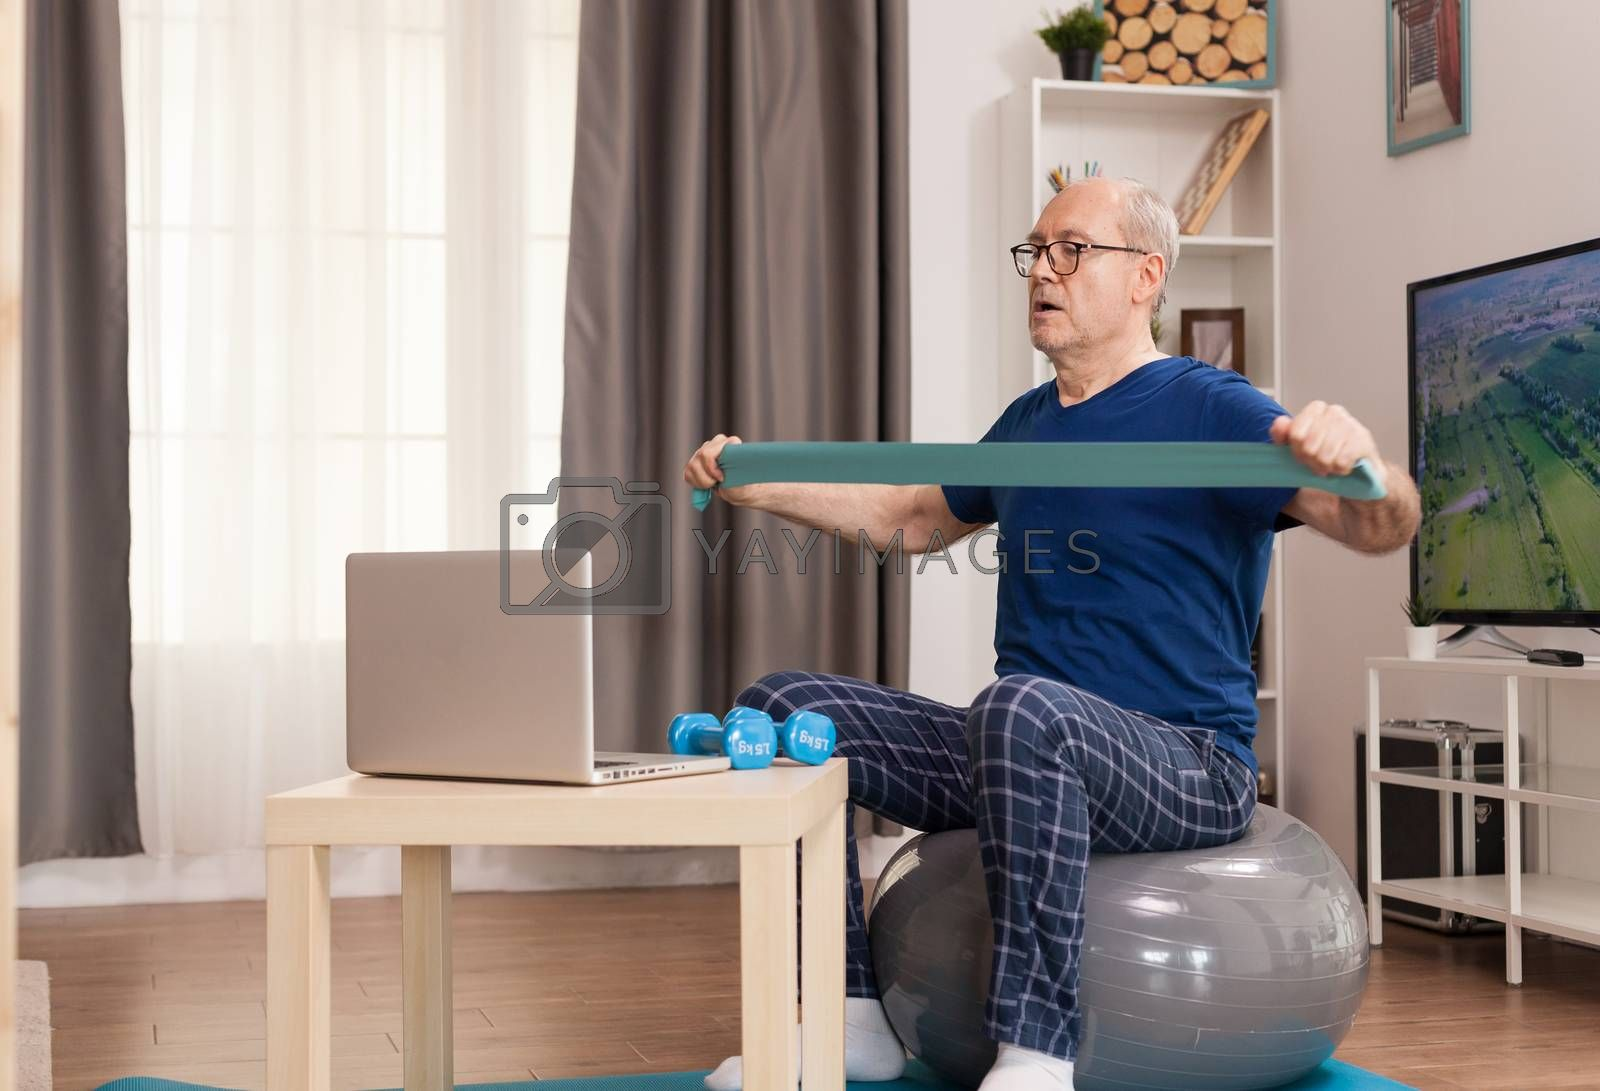 Strong old man training online with resistance band. Old person pensioner online internet exercise training at home sport activity with dumbbell, resistance band, swiss ball at elderly retirement age.